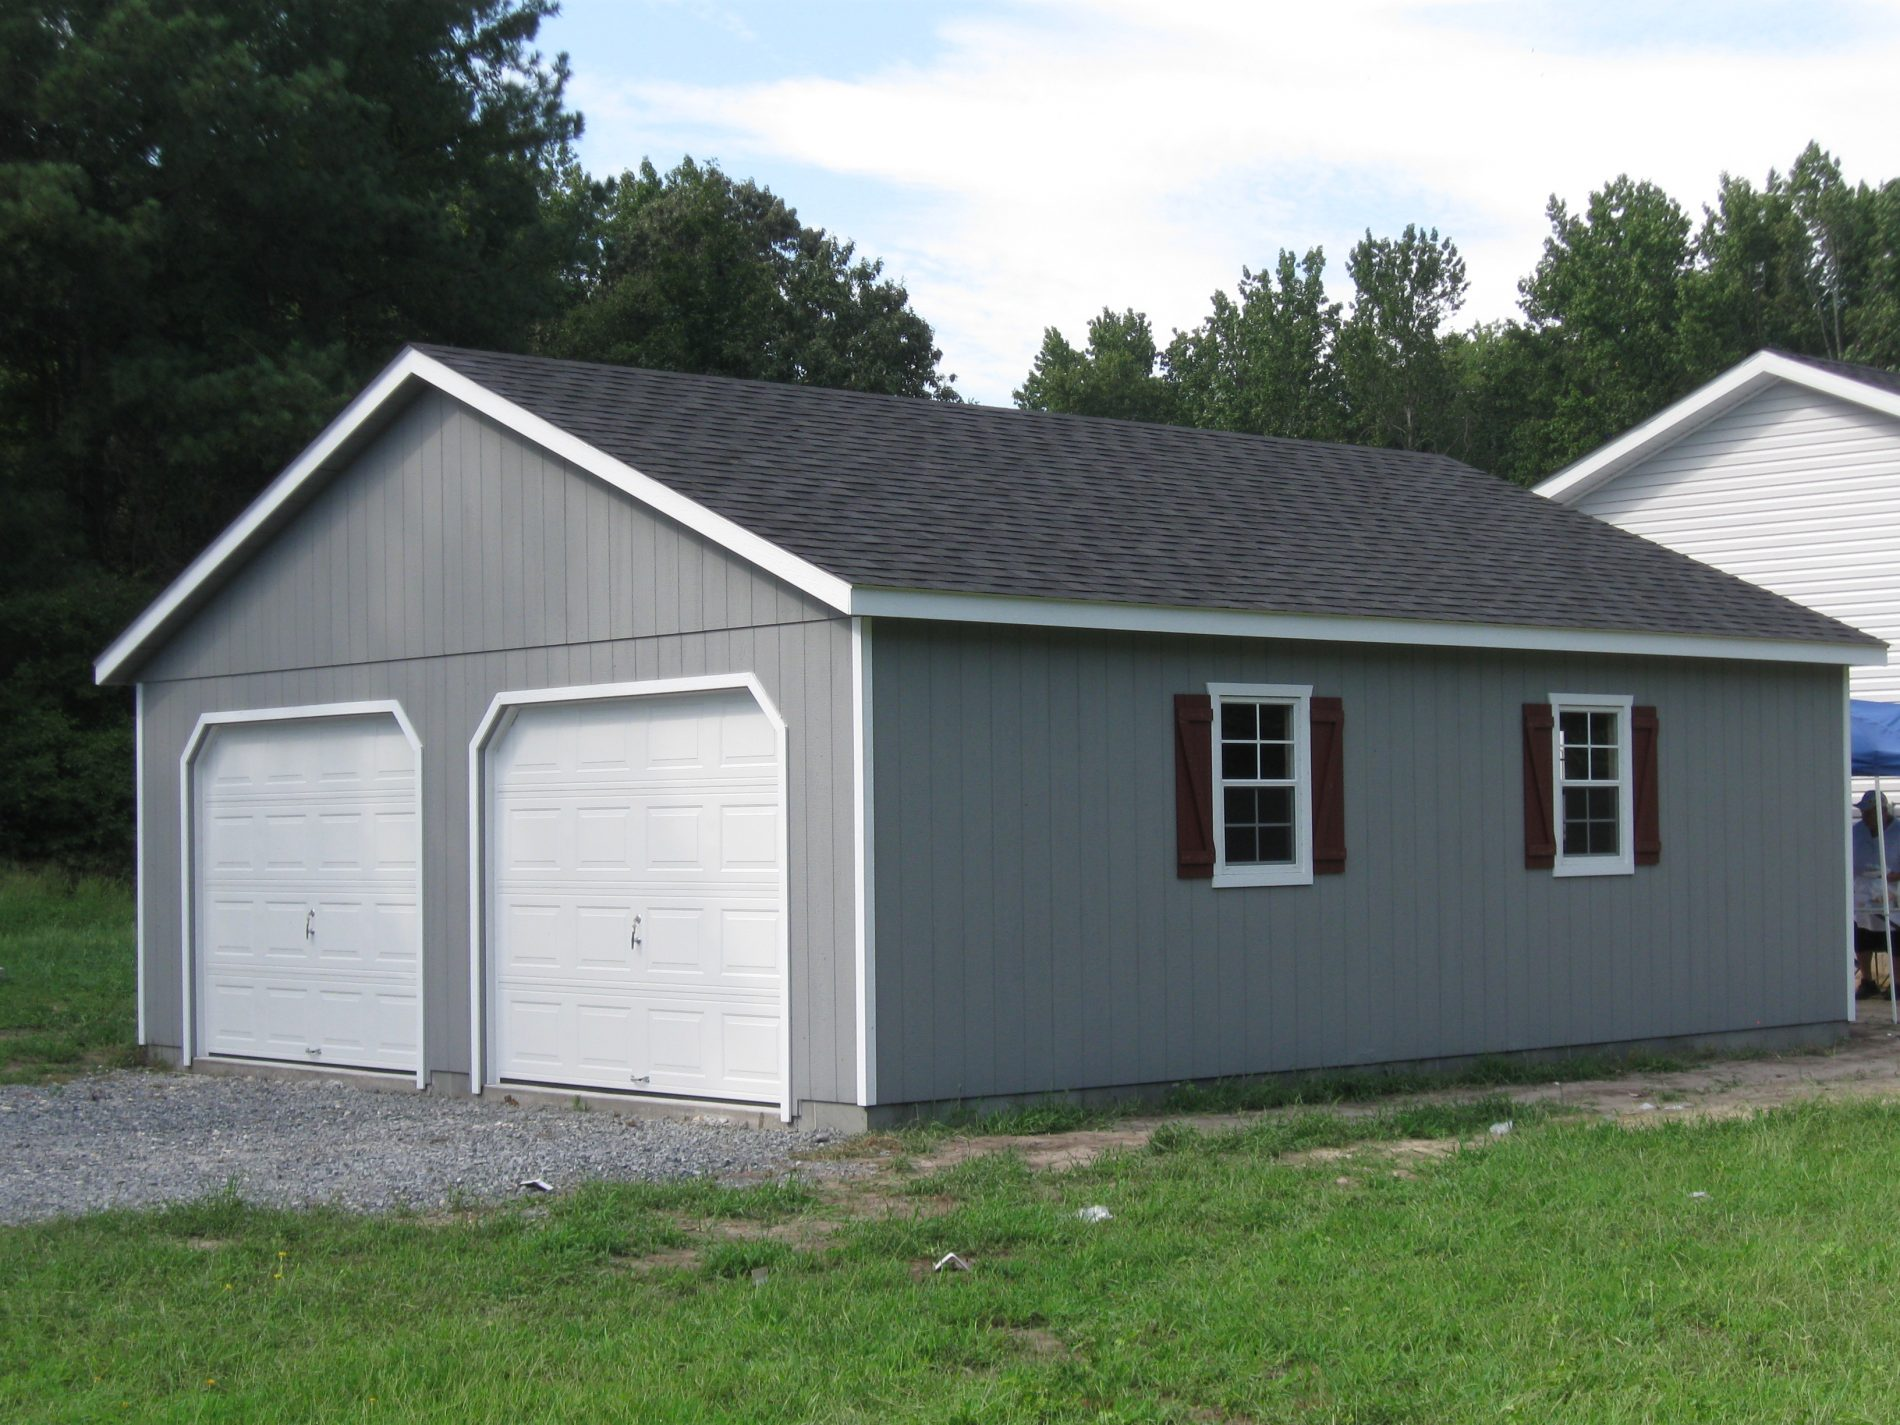 Double wide garages 2 car garages for sale zook cabins for Double garage cost